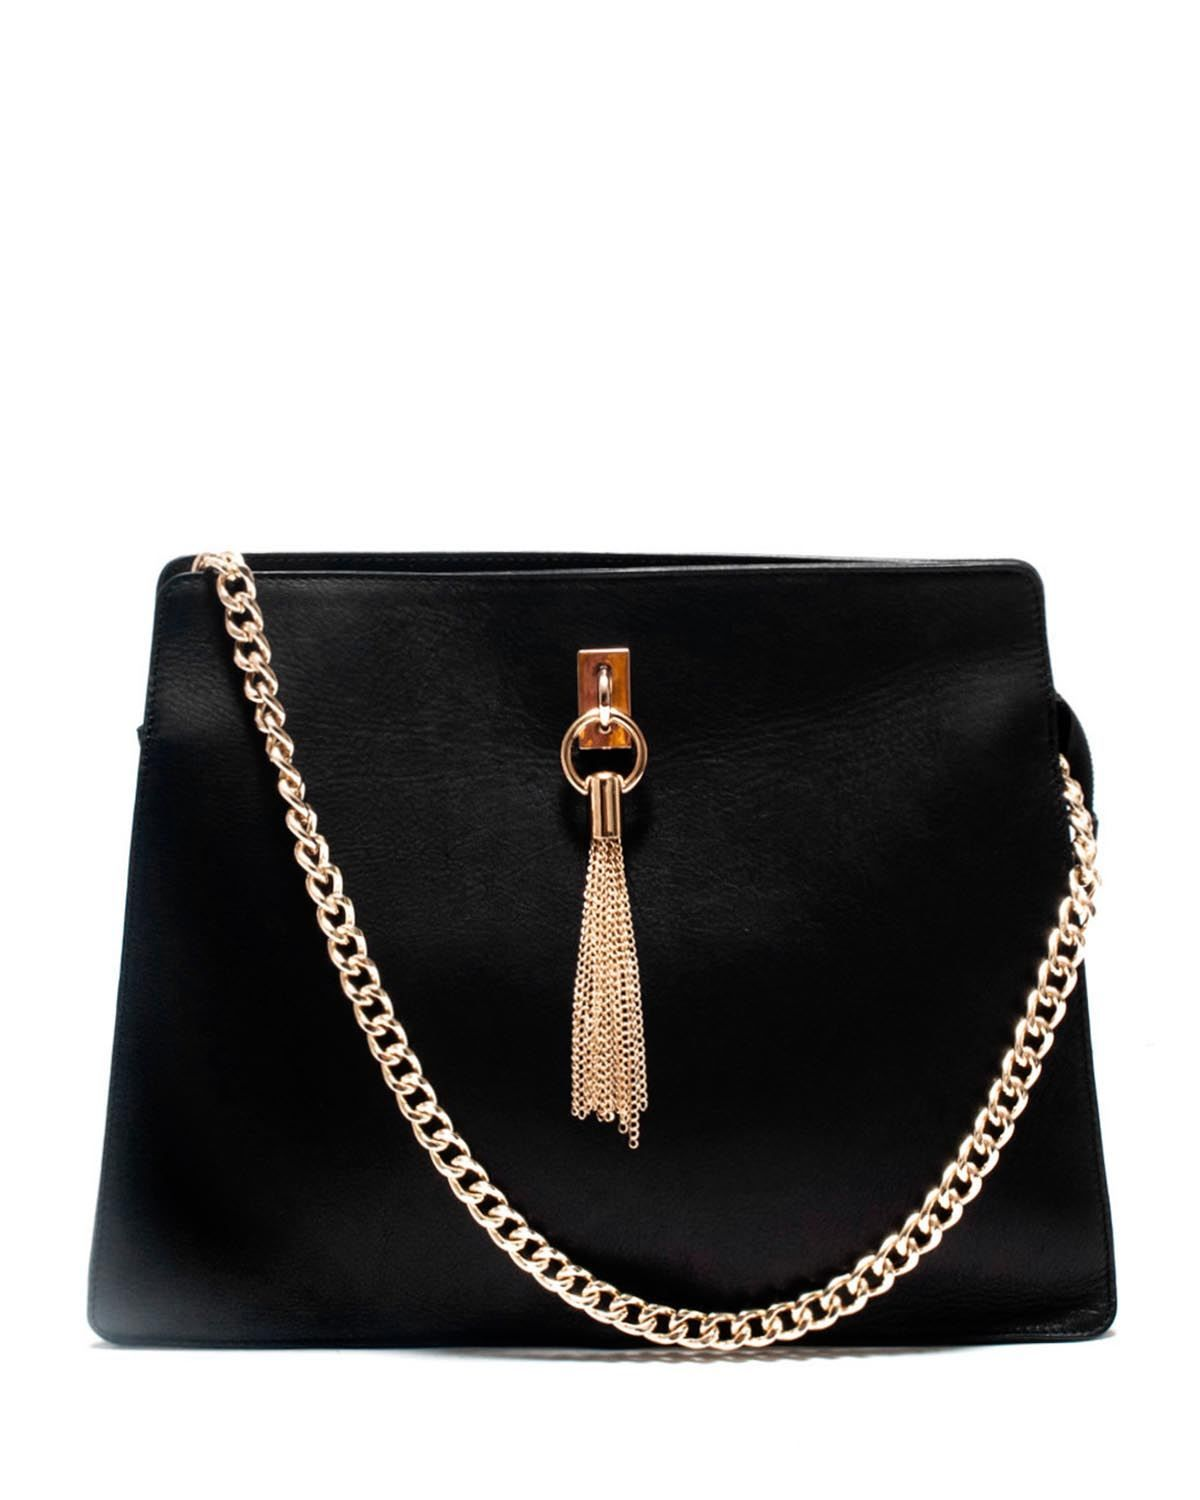 Roberta M Satchel For 135 At Modnique Com Start Shopping Now And Save 62 Flexible Return Policy 24 7 Client Online Fashion Stores Leather Satchel Satchel